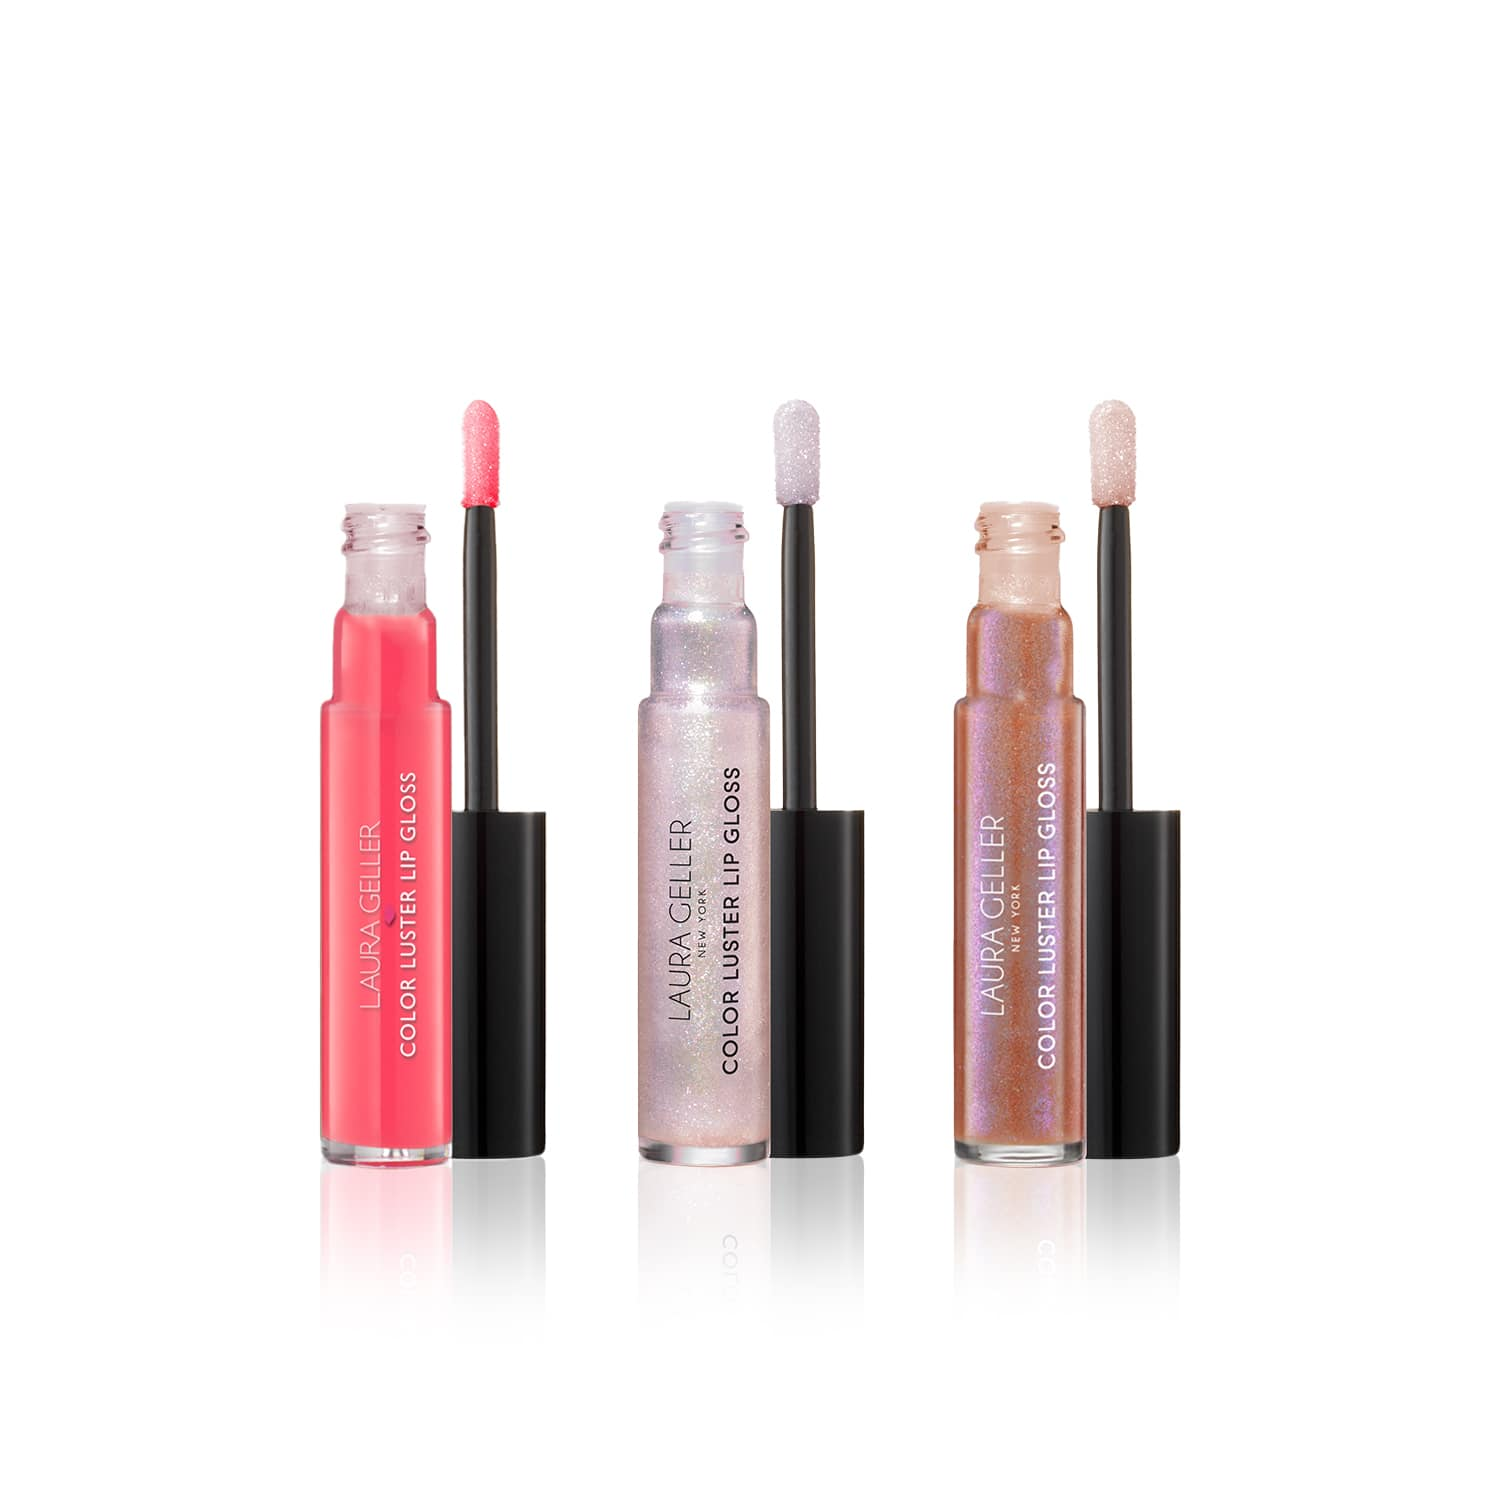 Color Luster Lip Gloss Hi-Def Top Coat (Set of 3)